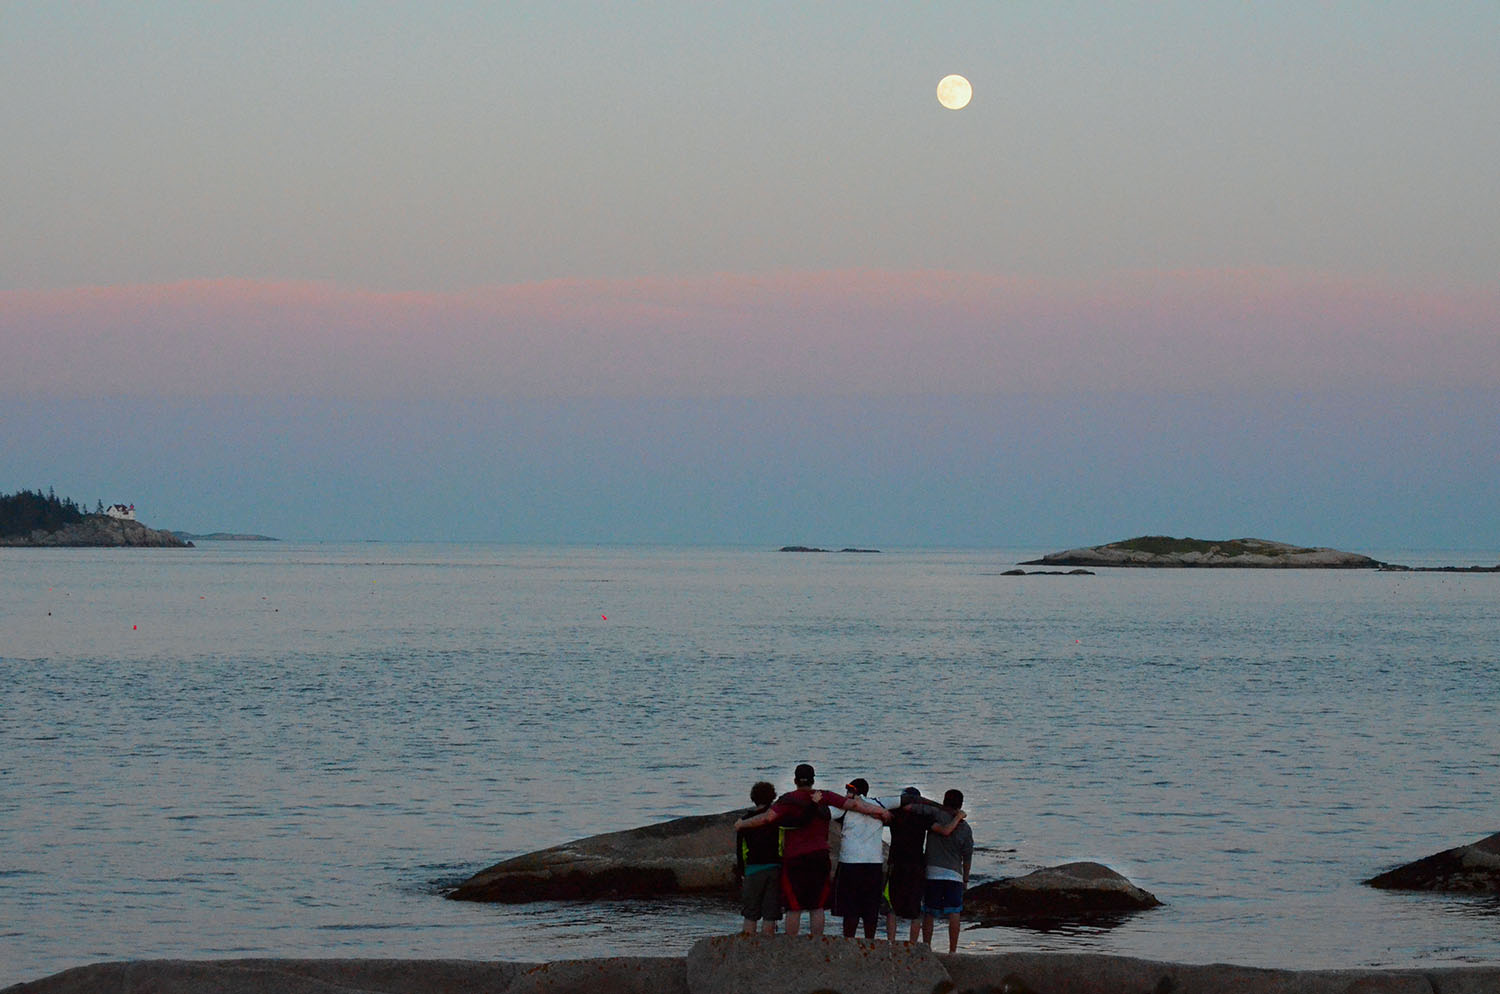 Students enjoy a quiet moment as the full moon rises over Heron's Neck lighthouse